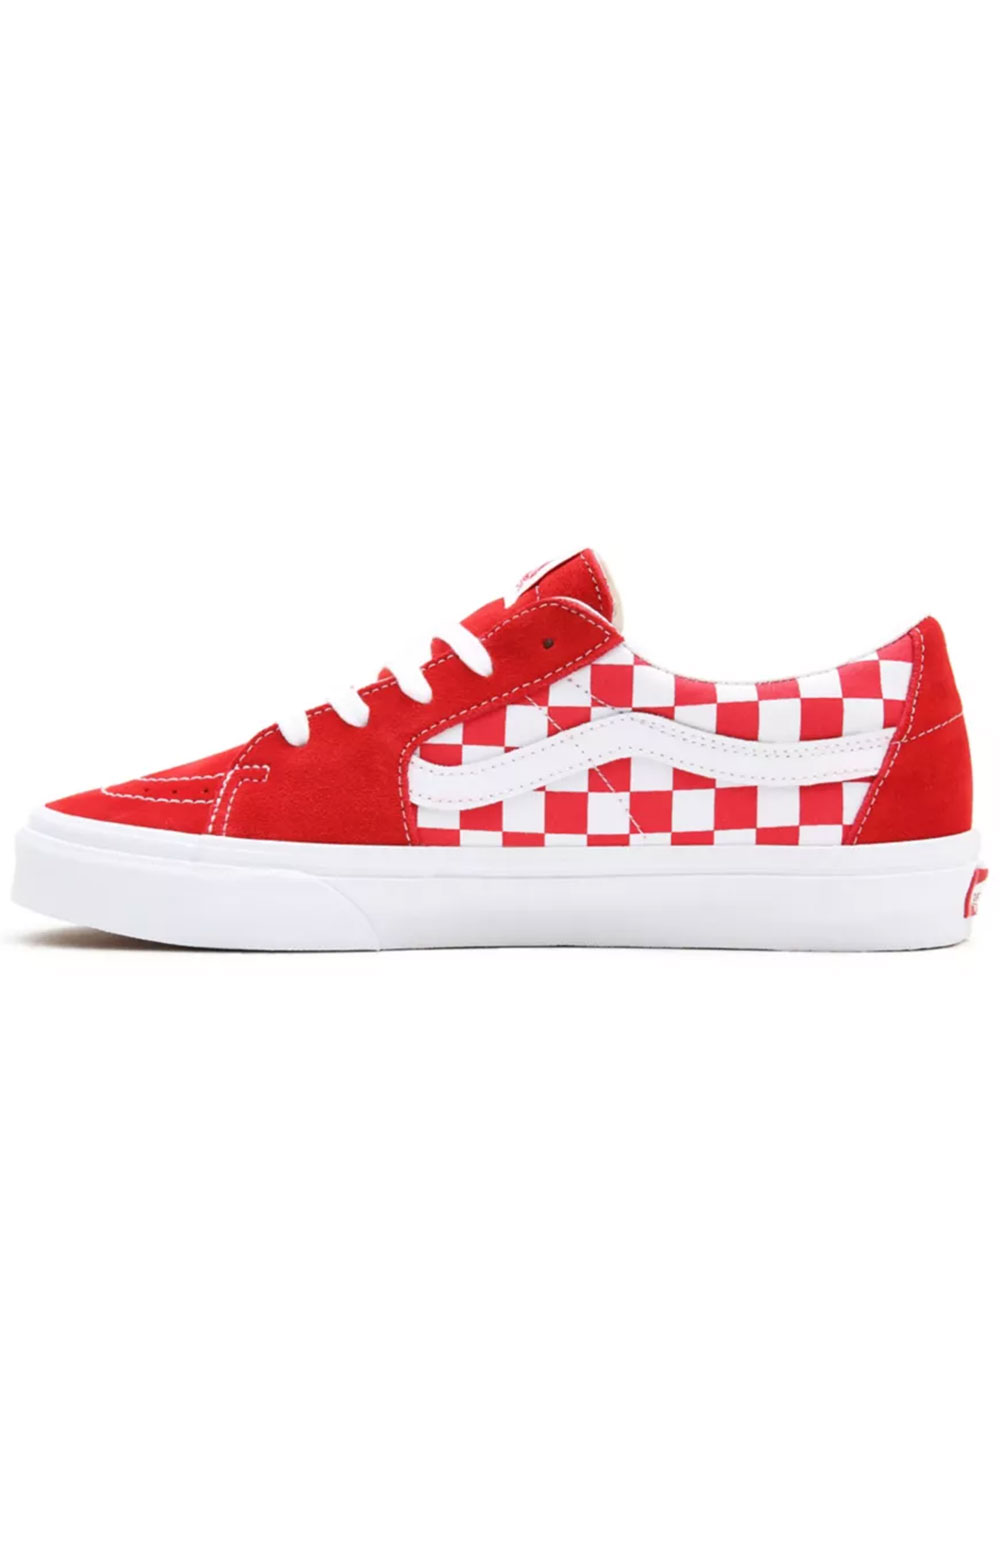 (UUK4W9) Canvas Suede Sk8-Low Shoes - Racing Red/Checkerboard 3